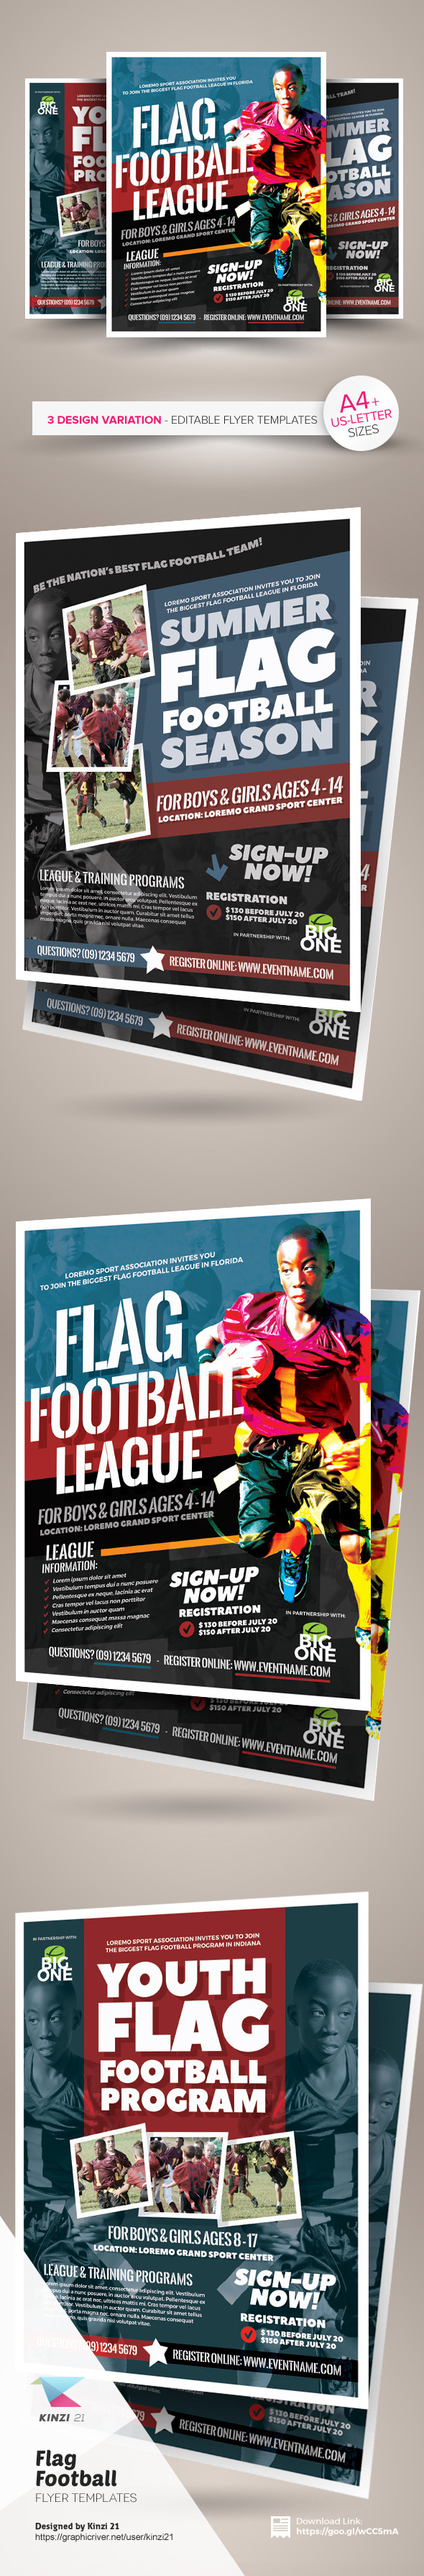 flag football flyer templates on behance flag football flyer templates are fully editable design templates created for on graphic river more info of the templates and how to get the